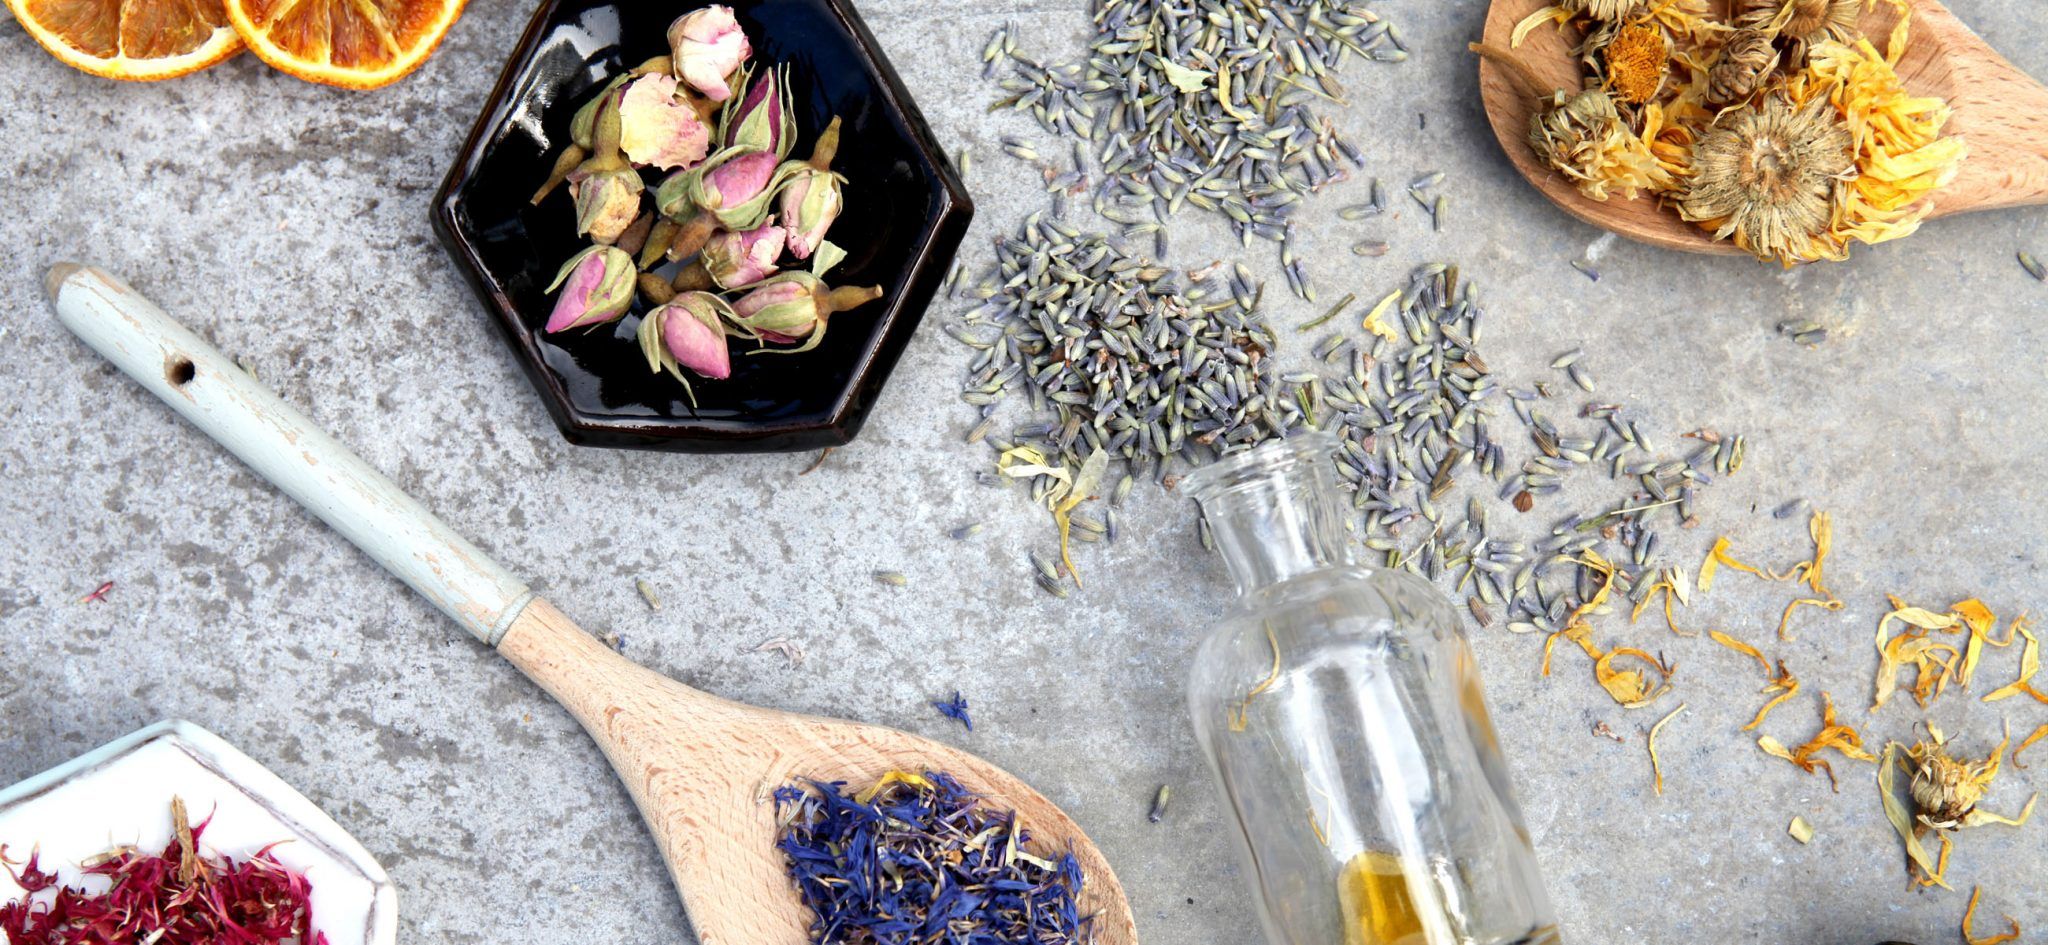 natural ingredients for skin, our skin care ingredients